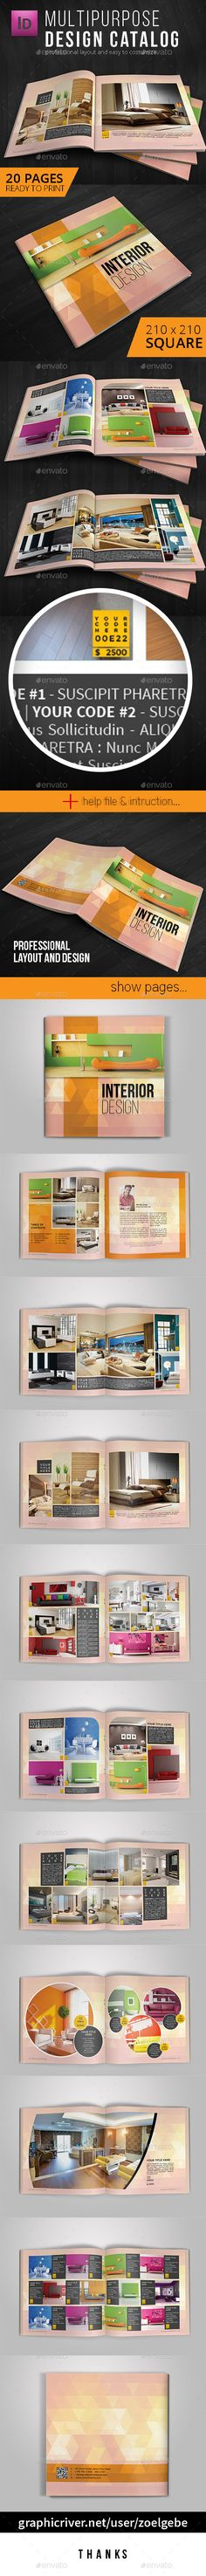 Square Modern Brochure / Catalog Template. Download: http://graphicriver.net/item/square-modern-brochure-catalog-template/11260922?ref=ksioks